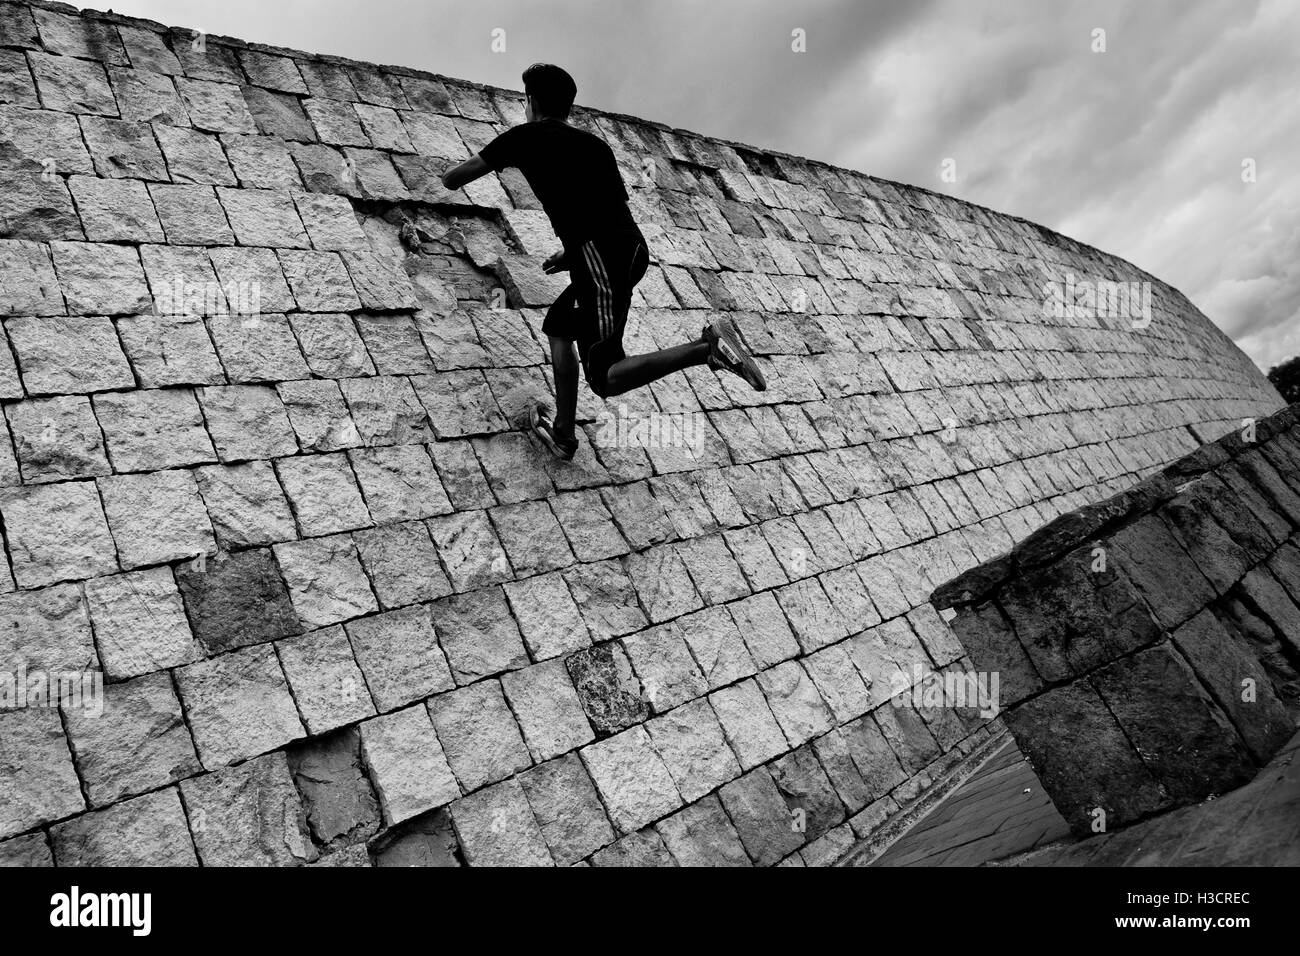 A Colombian parkour runner jumps on the wall during a free running training session in a park in Bogotá, Colombia. - Stock Image